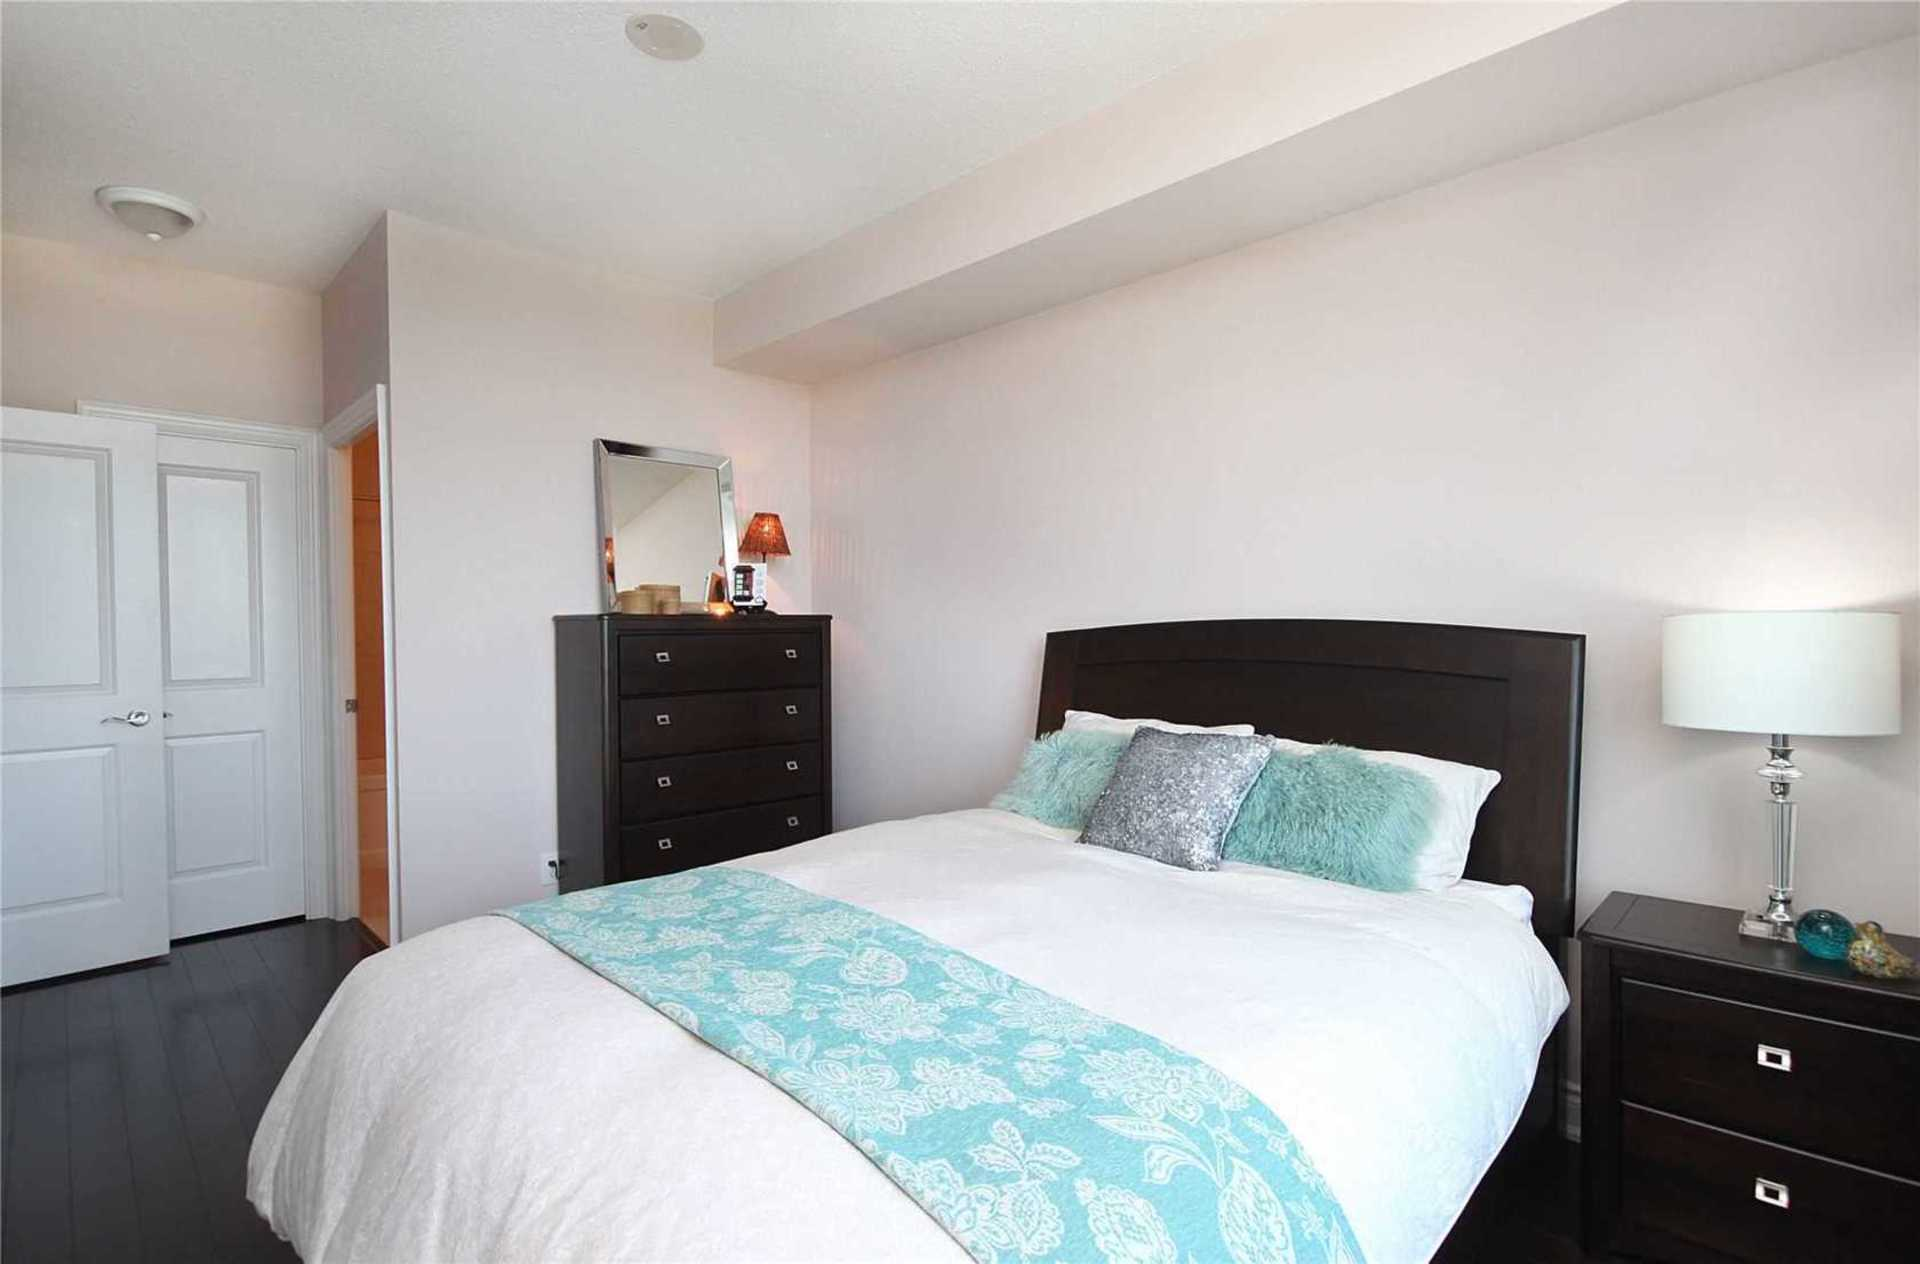 Master Bedroom at 1209 - 10 Bloorview Place, Don Valley Village, Toronto